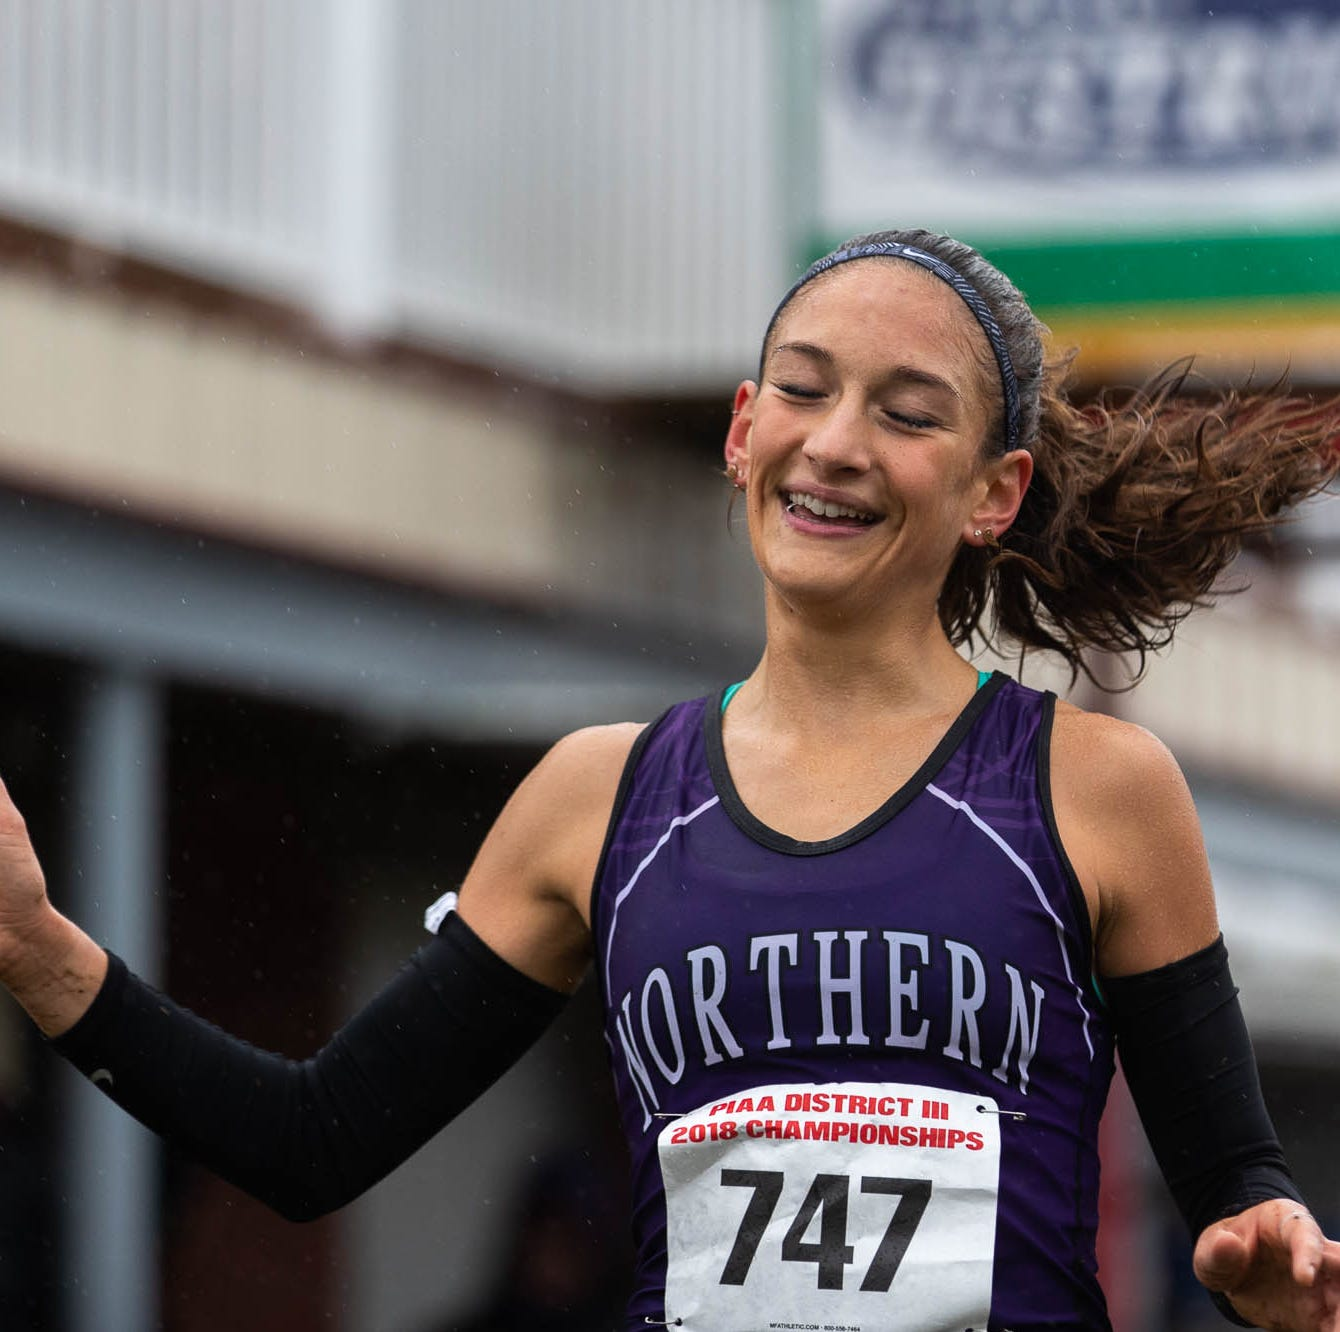 'I know I'm insane:' York County's All-American runner racking up records